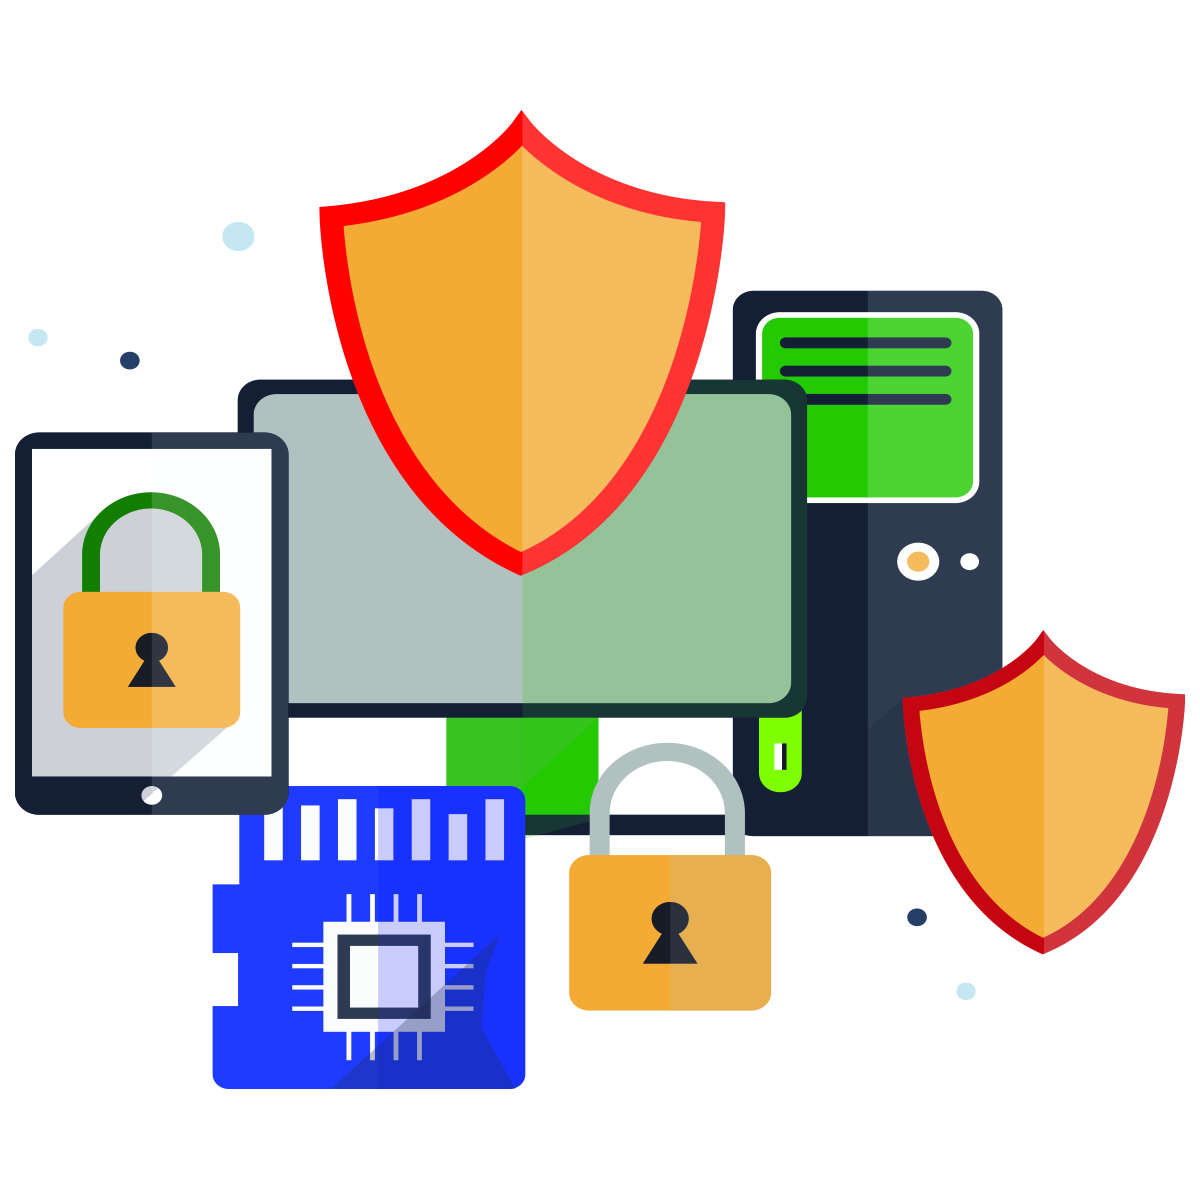 electronic devices, shields and locks